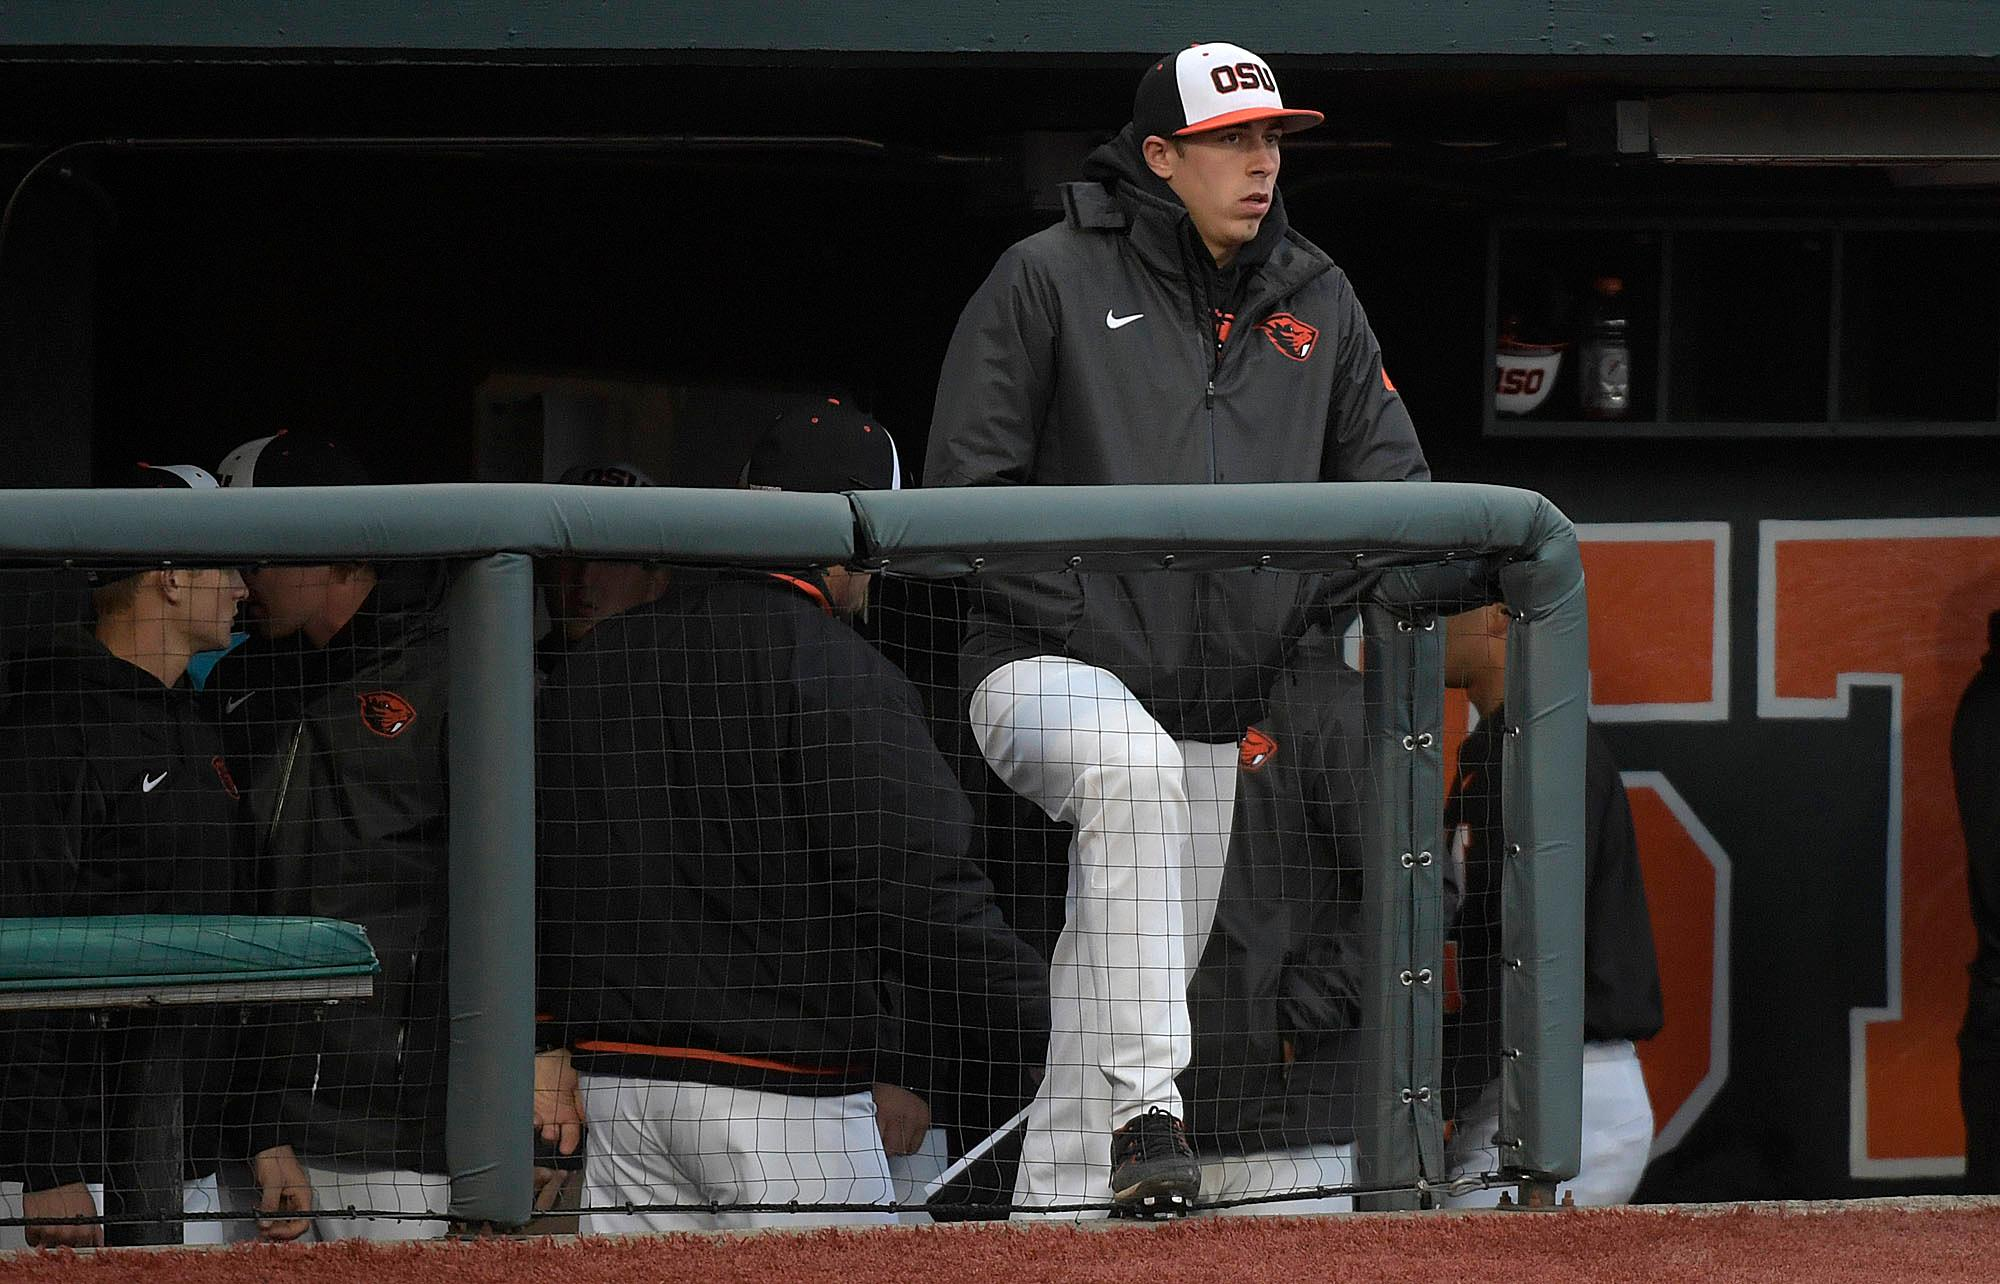 FILE - In this June 9, 2017, file photo, Oregon State's Luke Heimlich watches the team play Vanderbilt during an NCAA college baseball tournament super regional game in Corvallis, Ore. Heimlich, who as a teenager pleaded guilty to molesting a 6-year-old girl, will not accompany the Beavers to the College World Series. The 21-year-old left-hander made the announcement in a statement released through a representative for his family. He called going to the series something that he and his teammates have worked toward all year. (Mark Ylen/Albany Democrat-Herald via AP, file)